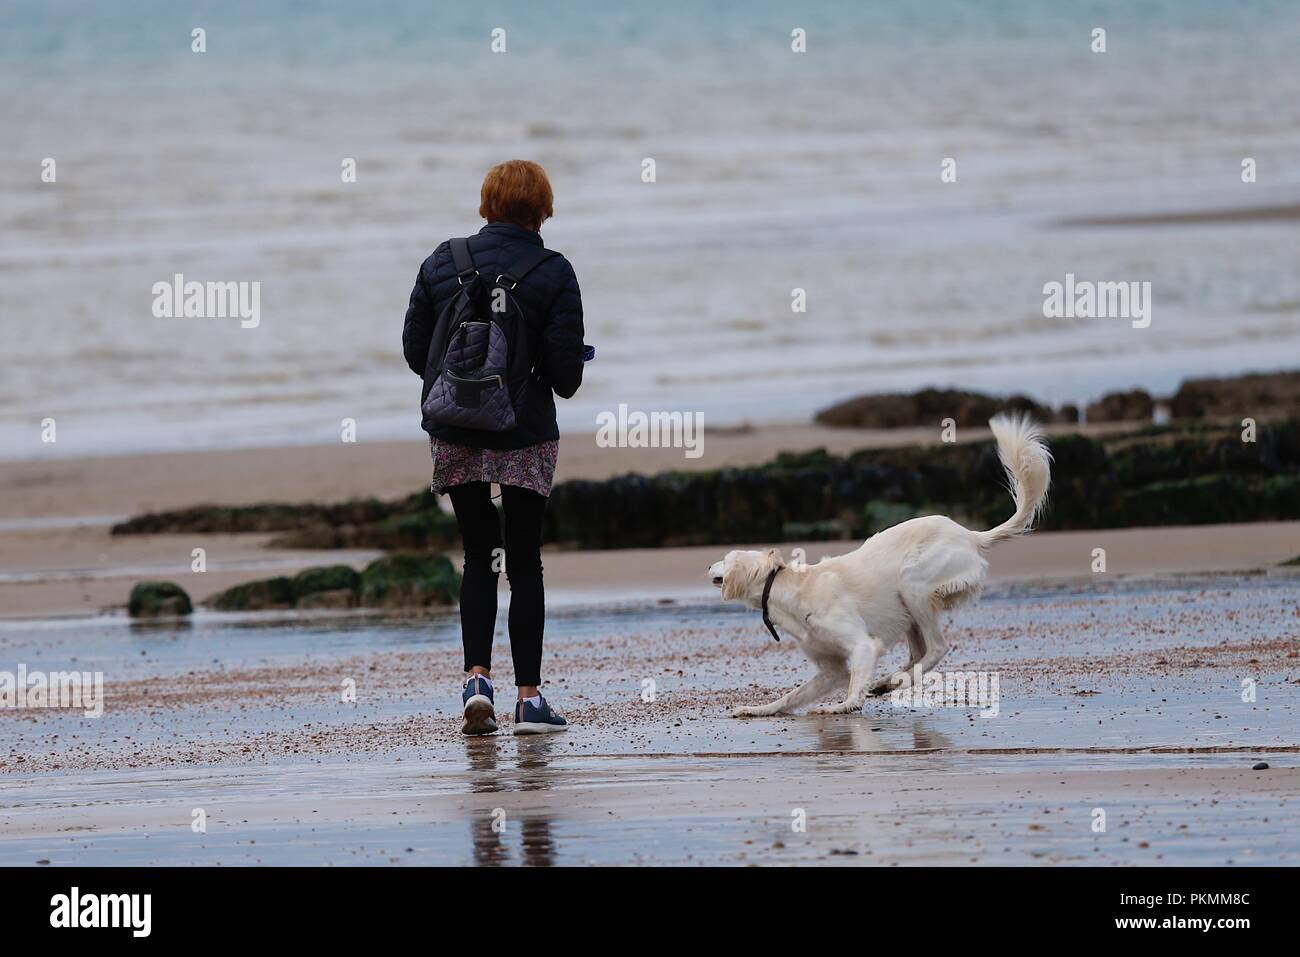 Hastings, East Sussex, UK. 14th Sep, 2018. UK Weather: Cloudy with a drop in temperature but pleasant morning in the seaside town of Hastings. A woman takes her playful dog for a walk along the beach. © Paul Lawrenson 2018, Photo Credit: Paul Lawrenson / Alamy Live News - Stock Image